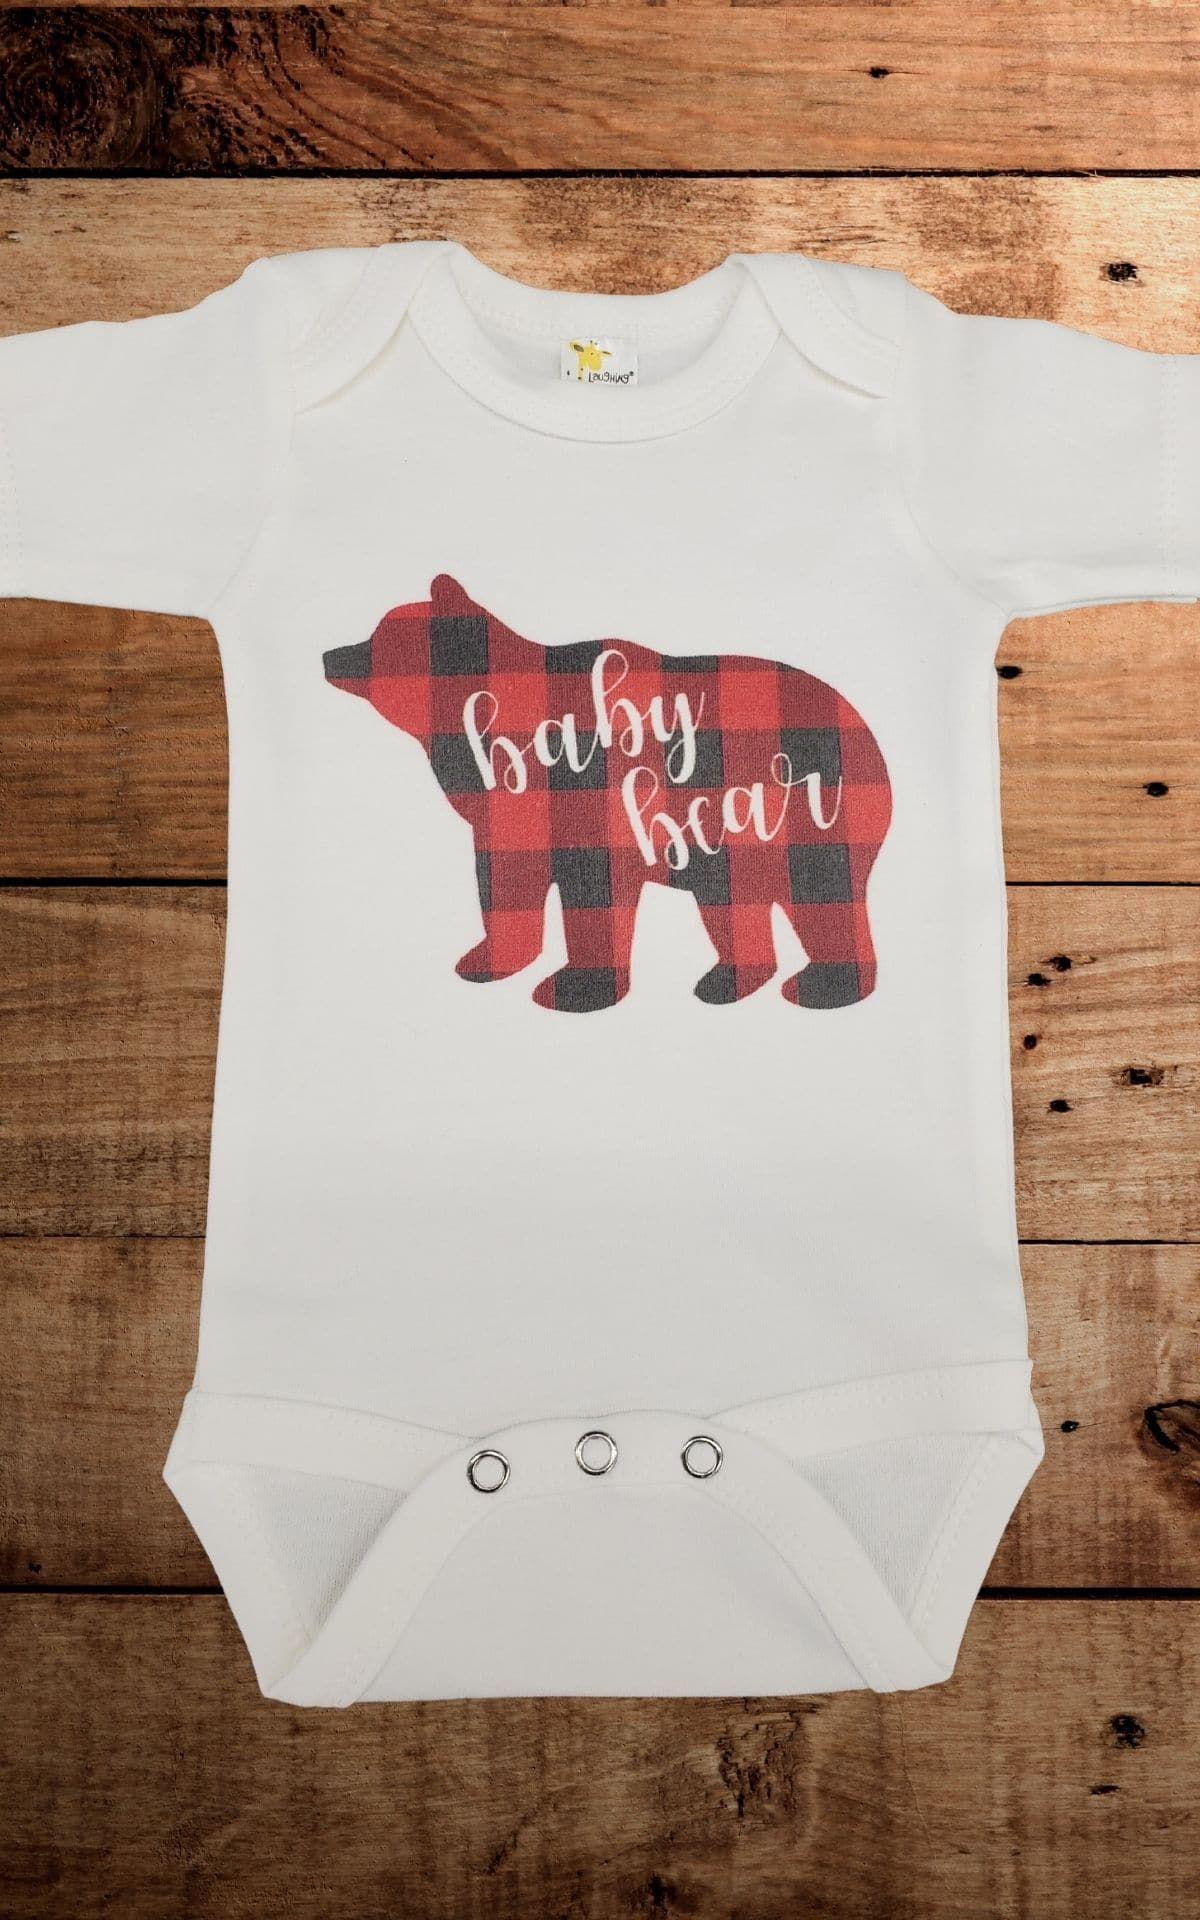 Baby Onsies - Baby Bear in red black check